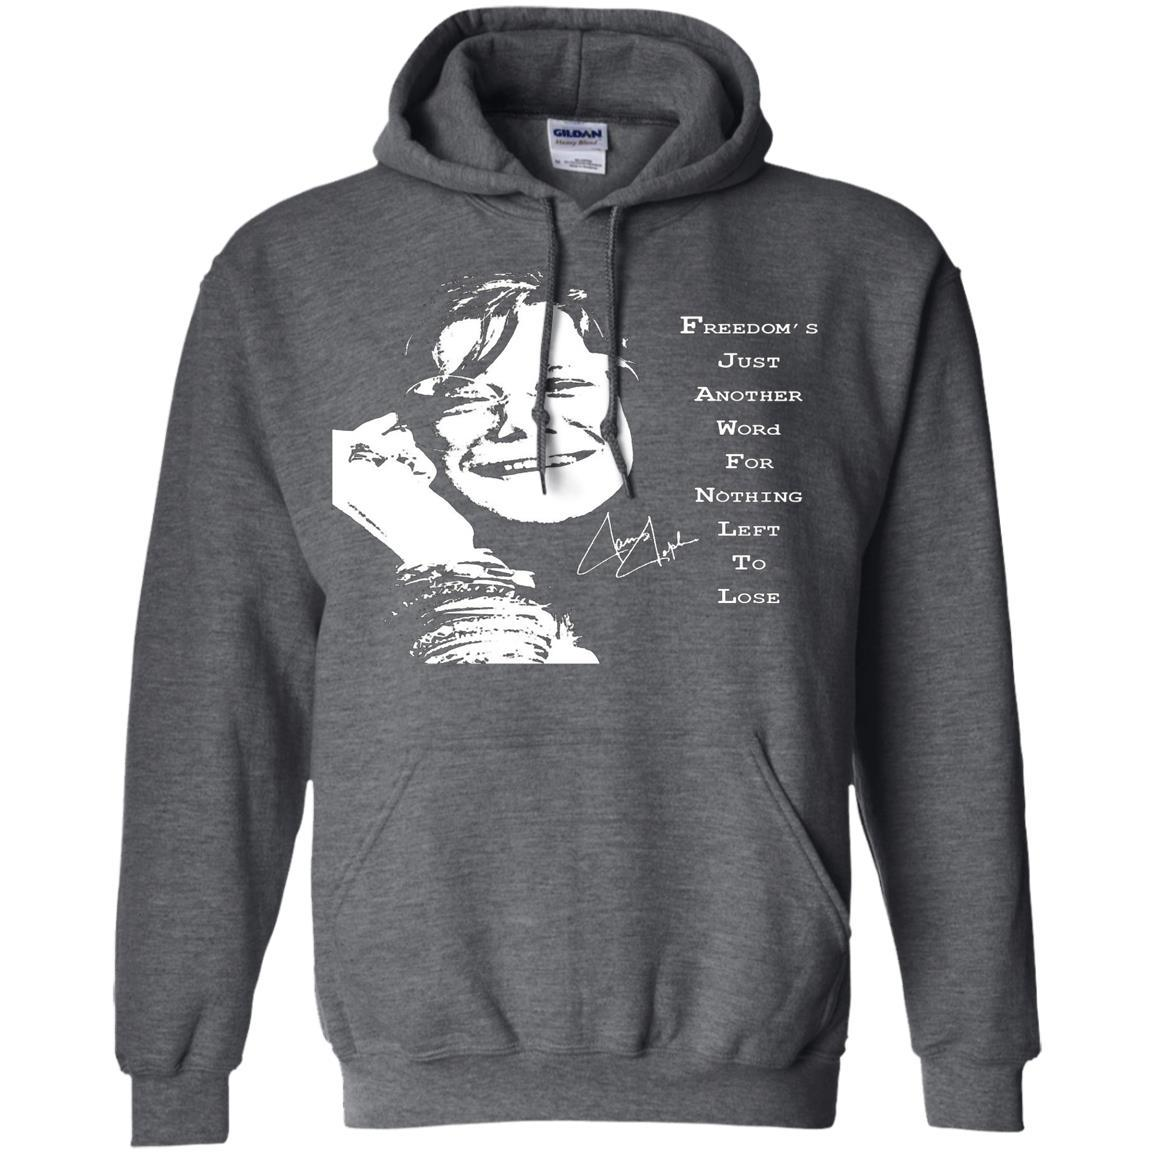 JANIS JOPLIN SHIRTS FOR FANS - Pullover Hoodie Dark Heather / 5XL